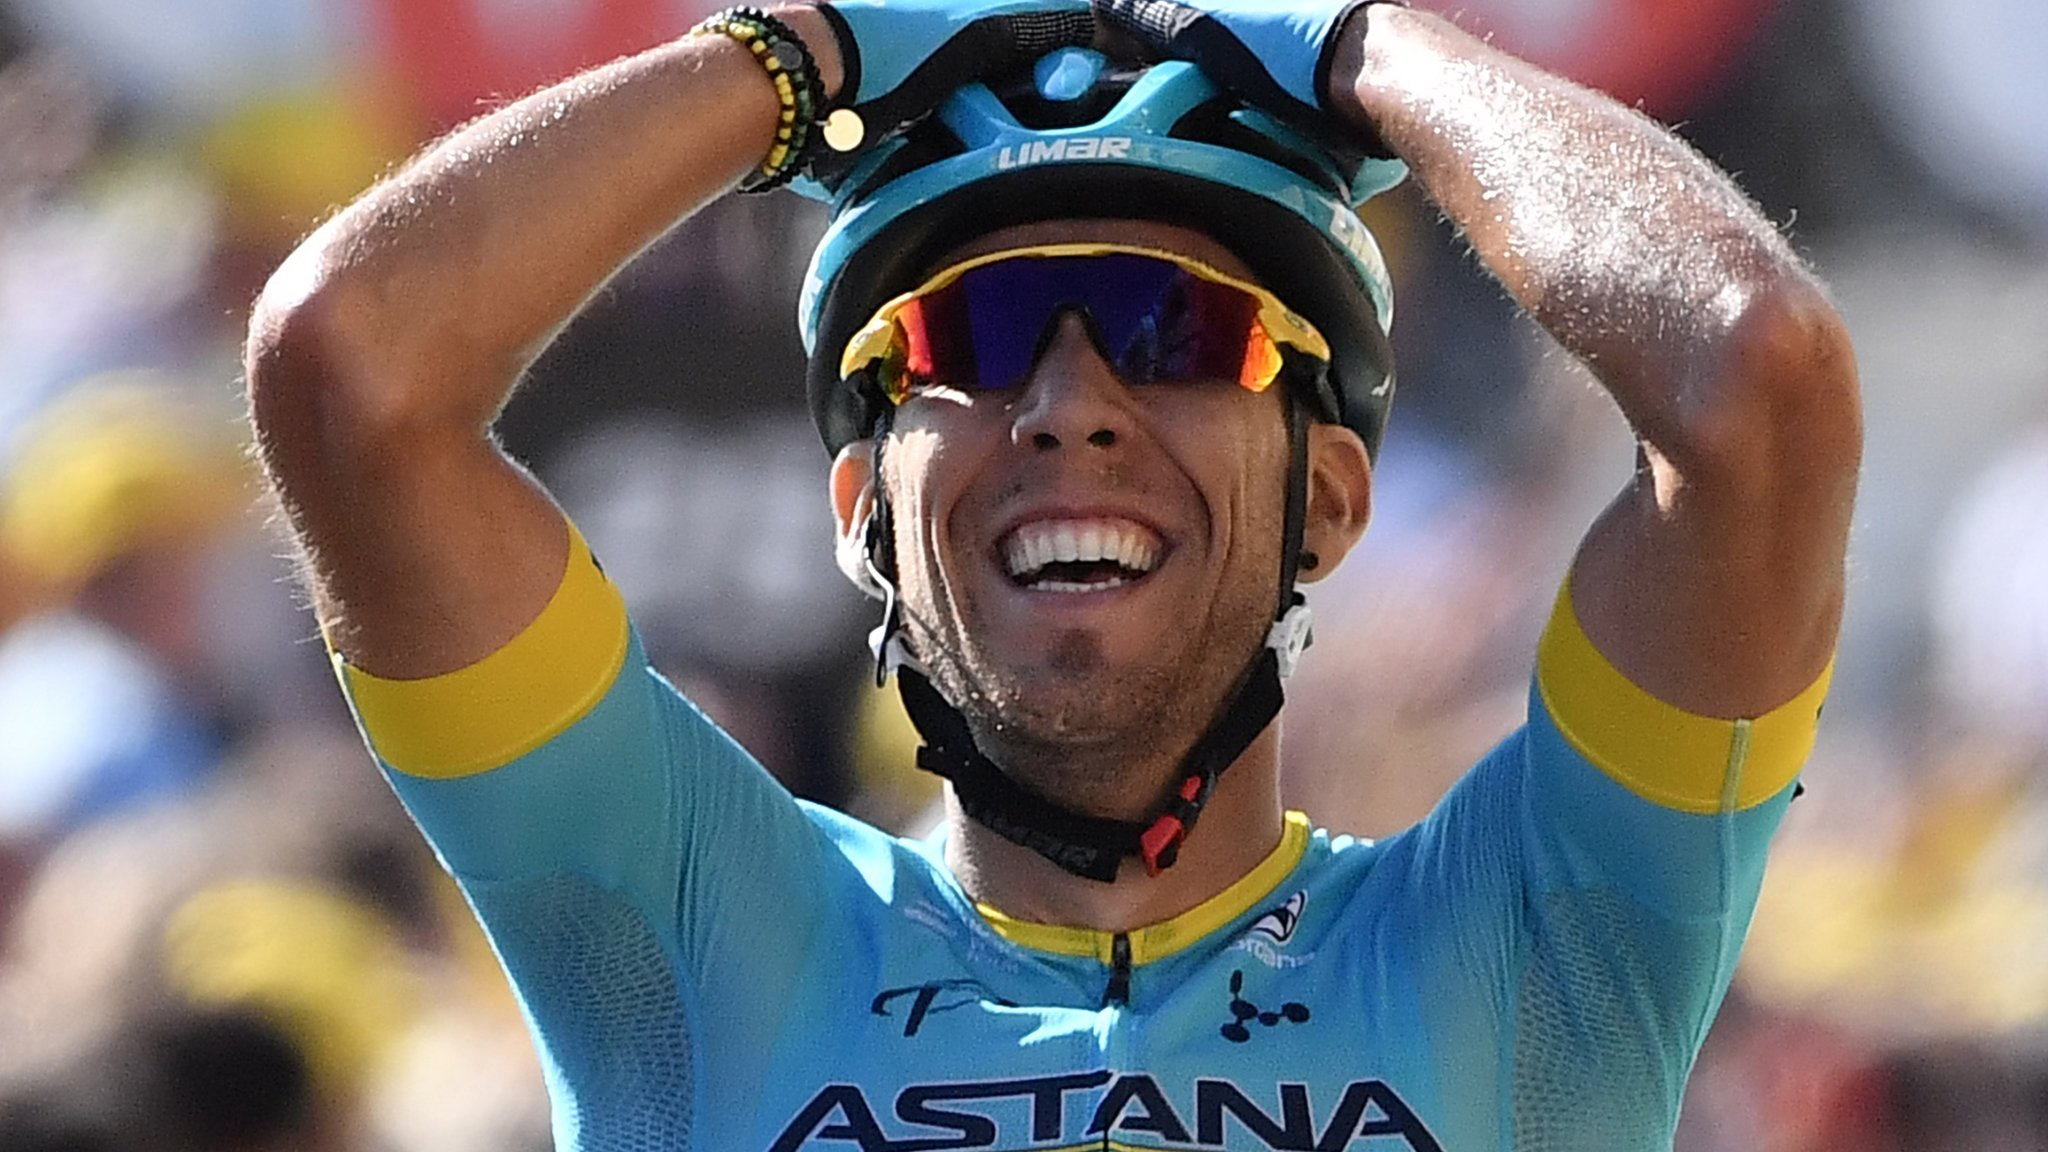 Fraile wins stage 14 of Tour de France, Thomas keeps yellow